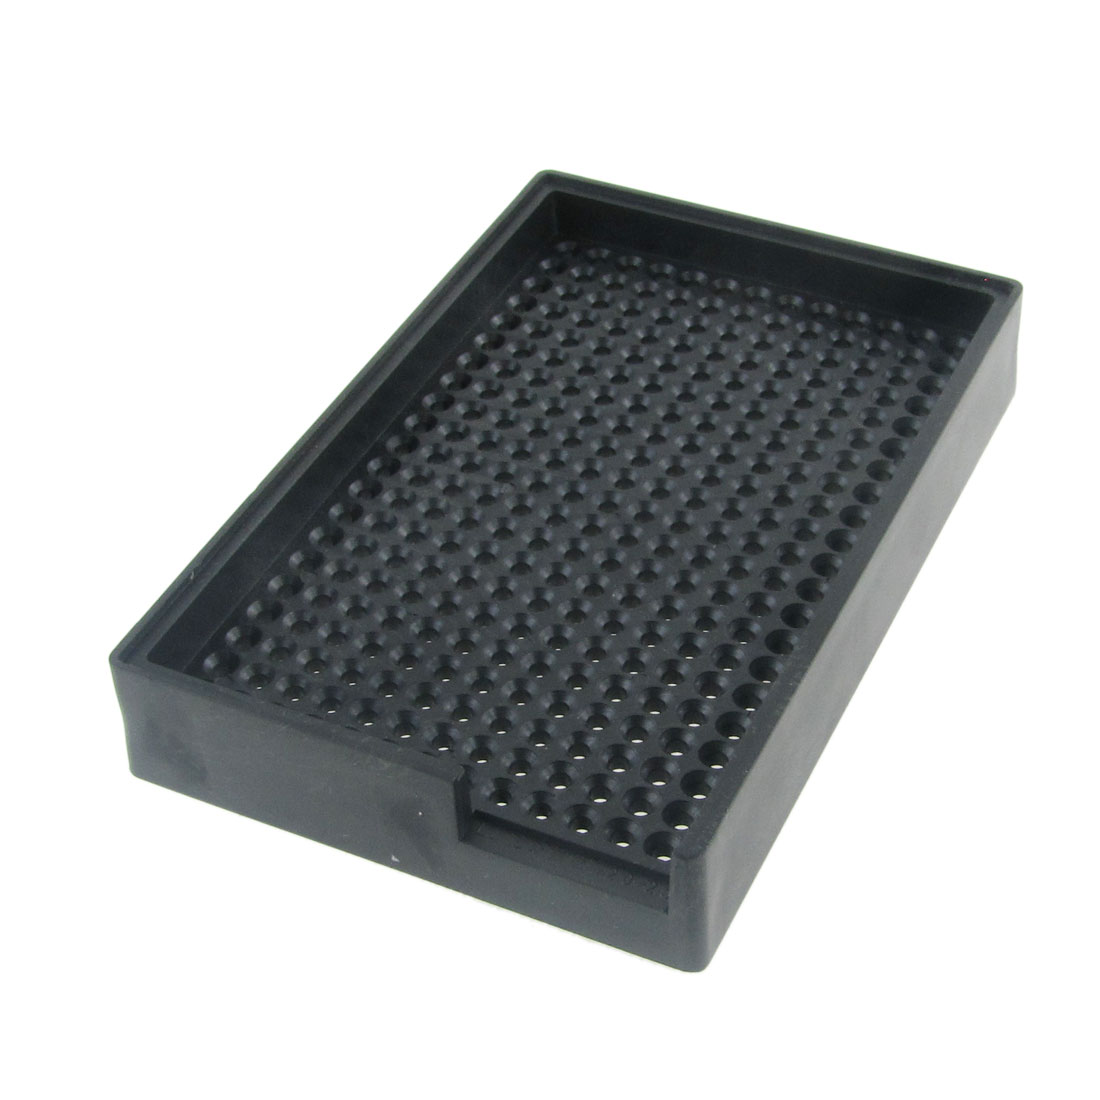 Uxcell 2.0mm-2.5mm Screw Antistatic Hard Plastic Tray Holder Black (1-pack)